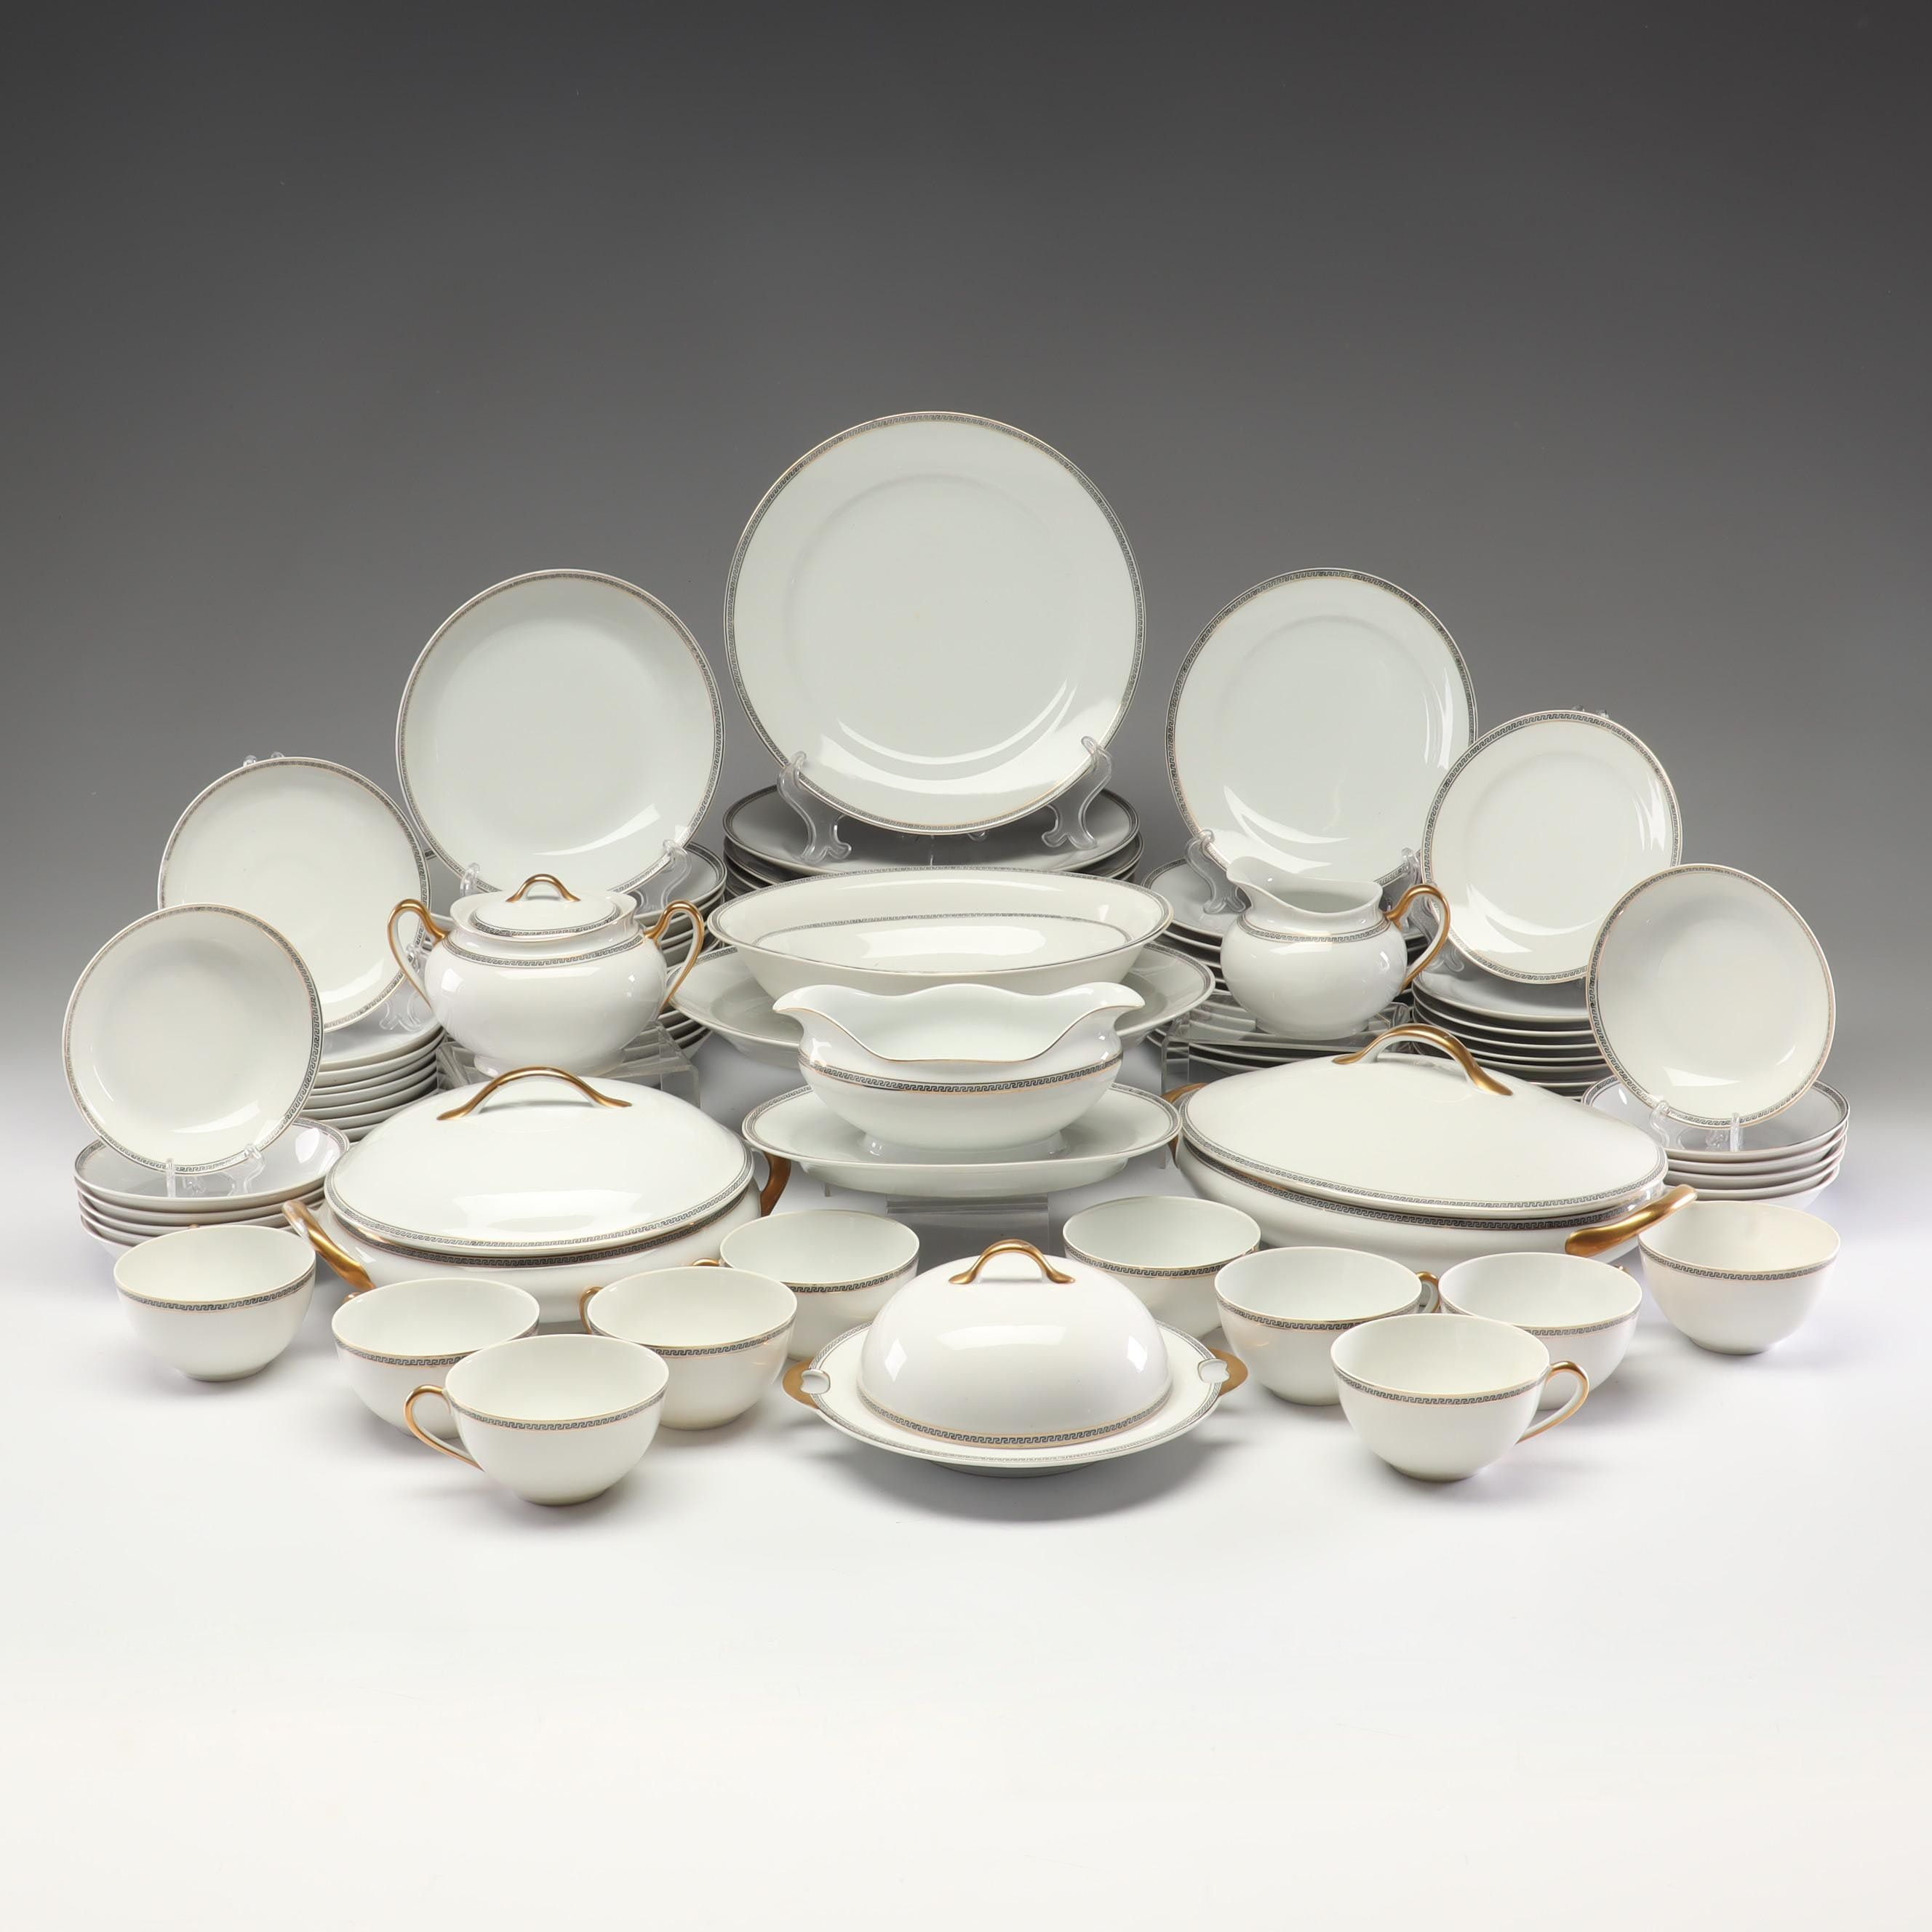 Meito China Gold-Rimmed Dinnerware